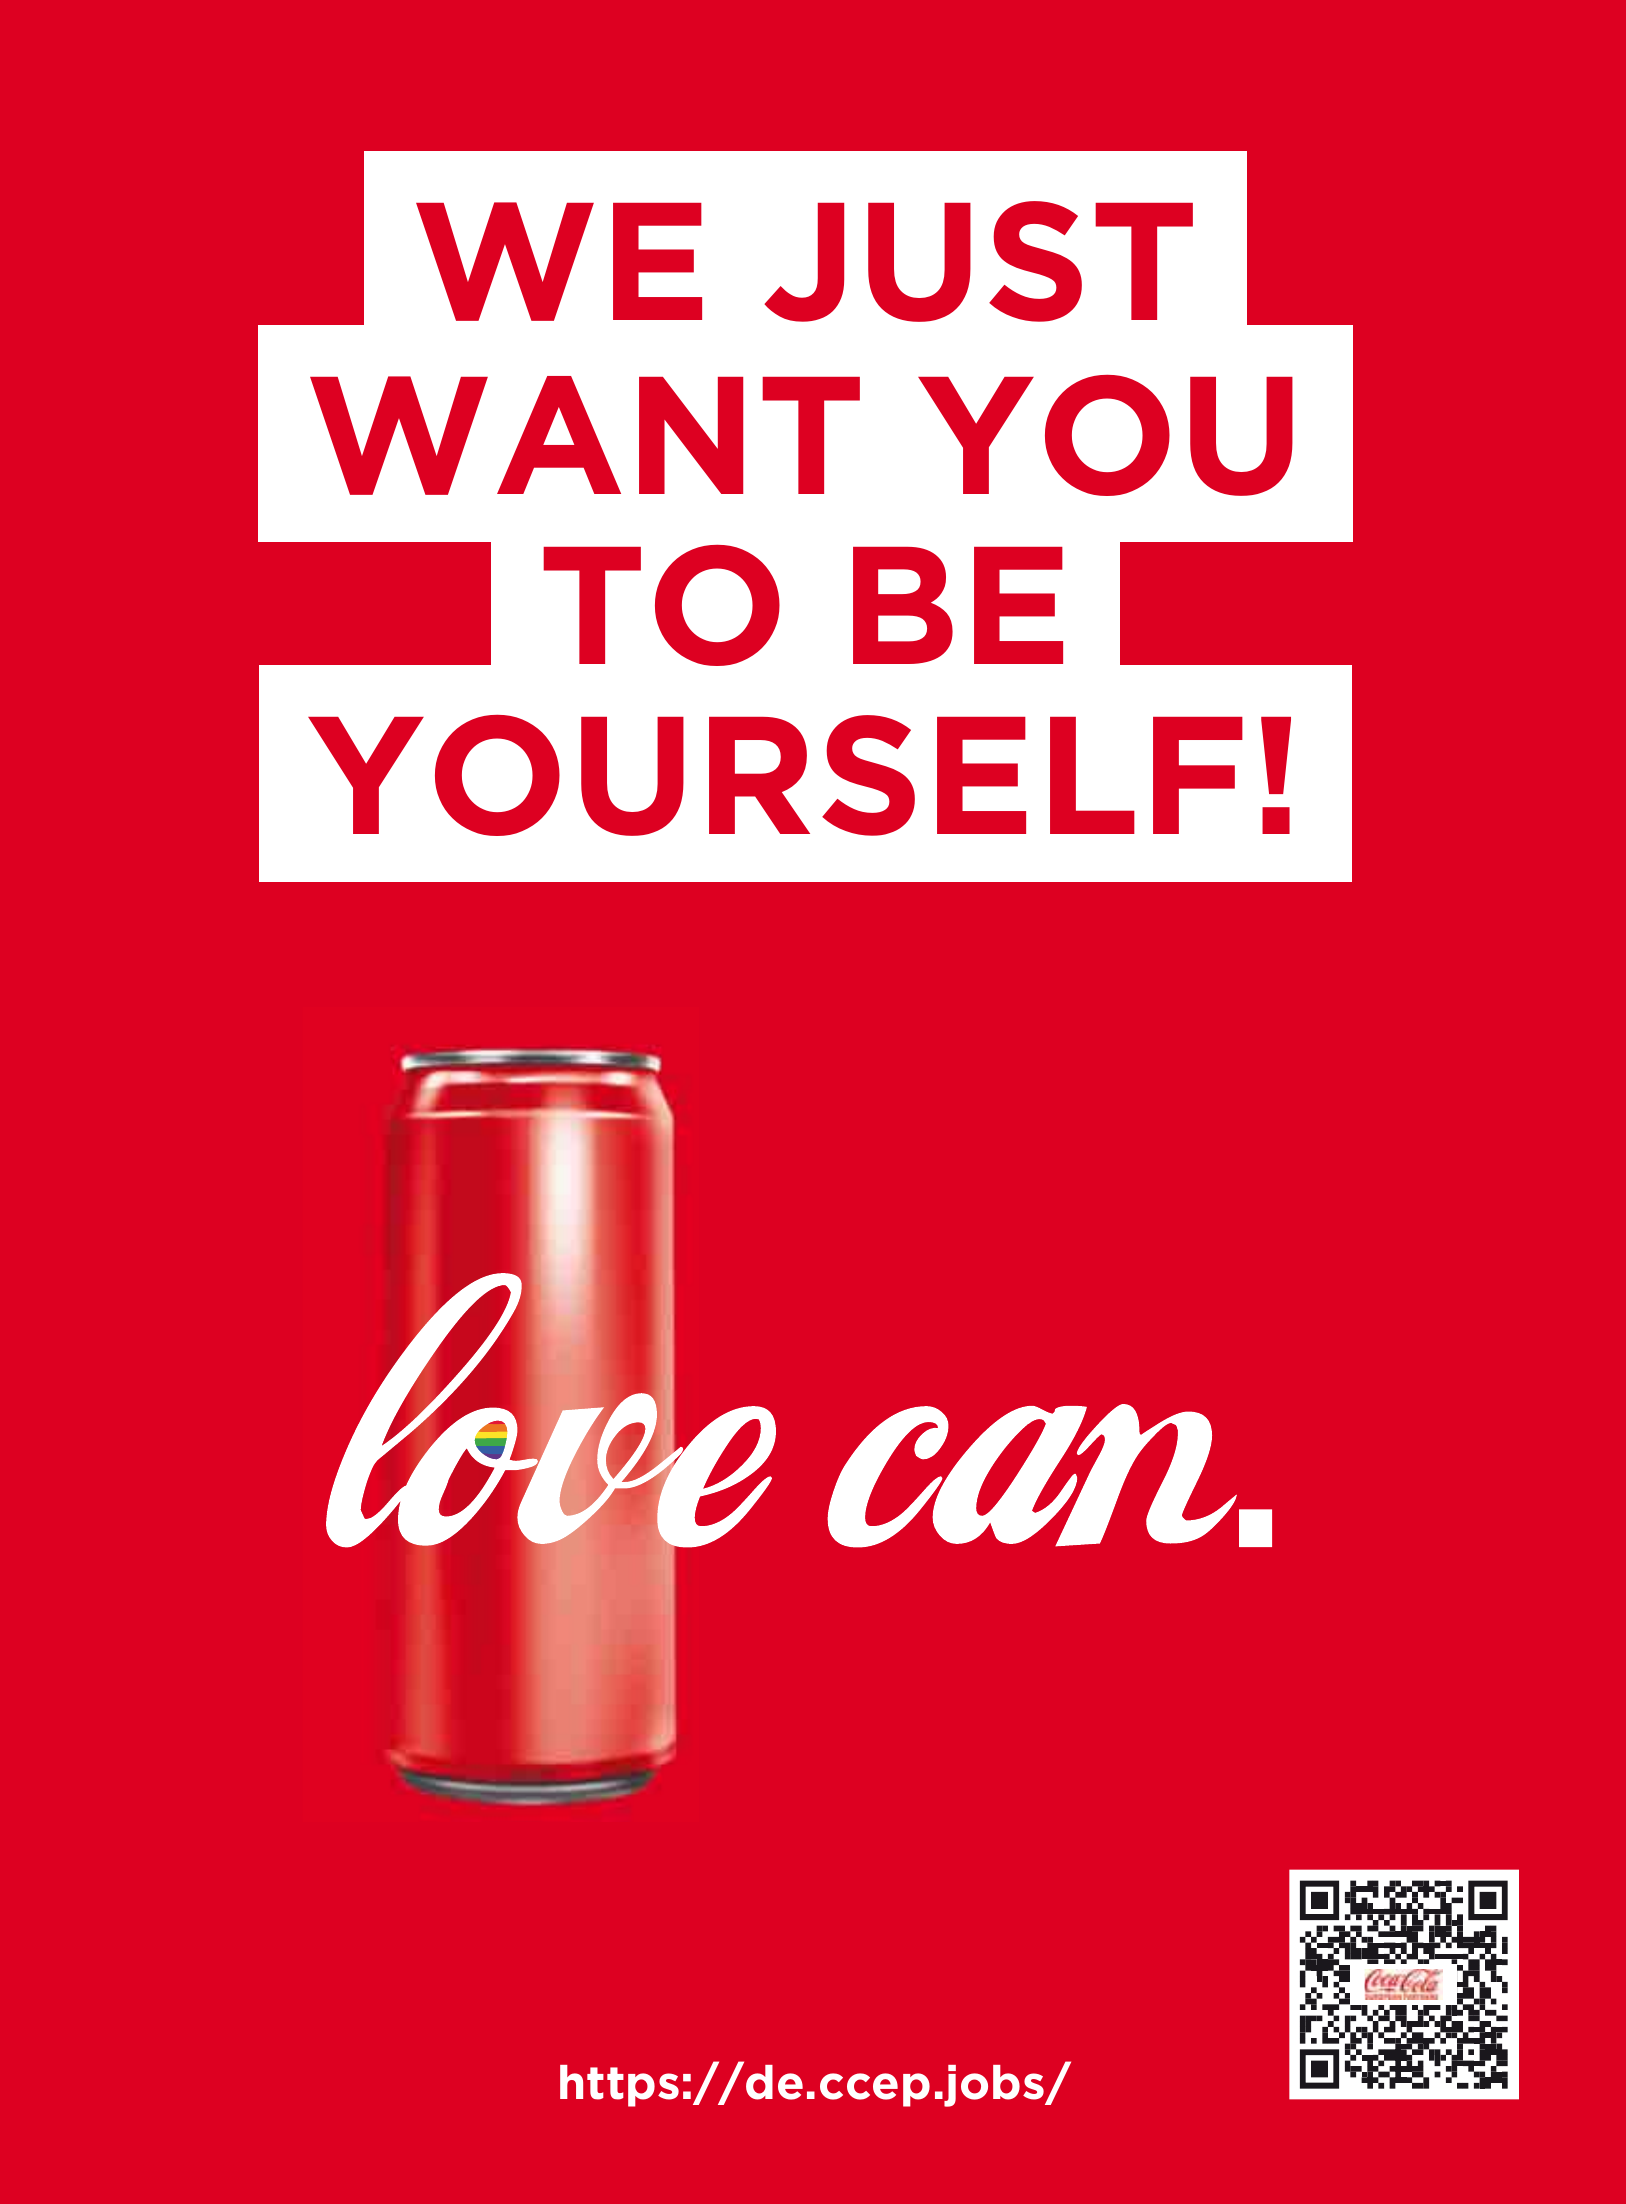 Coca Cola: love can.